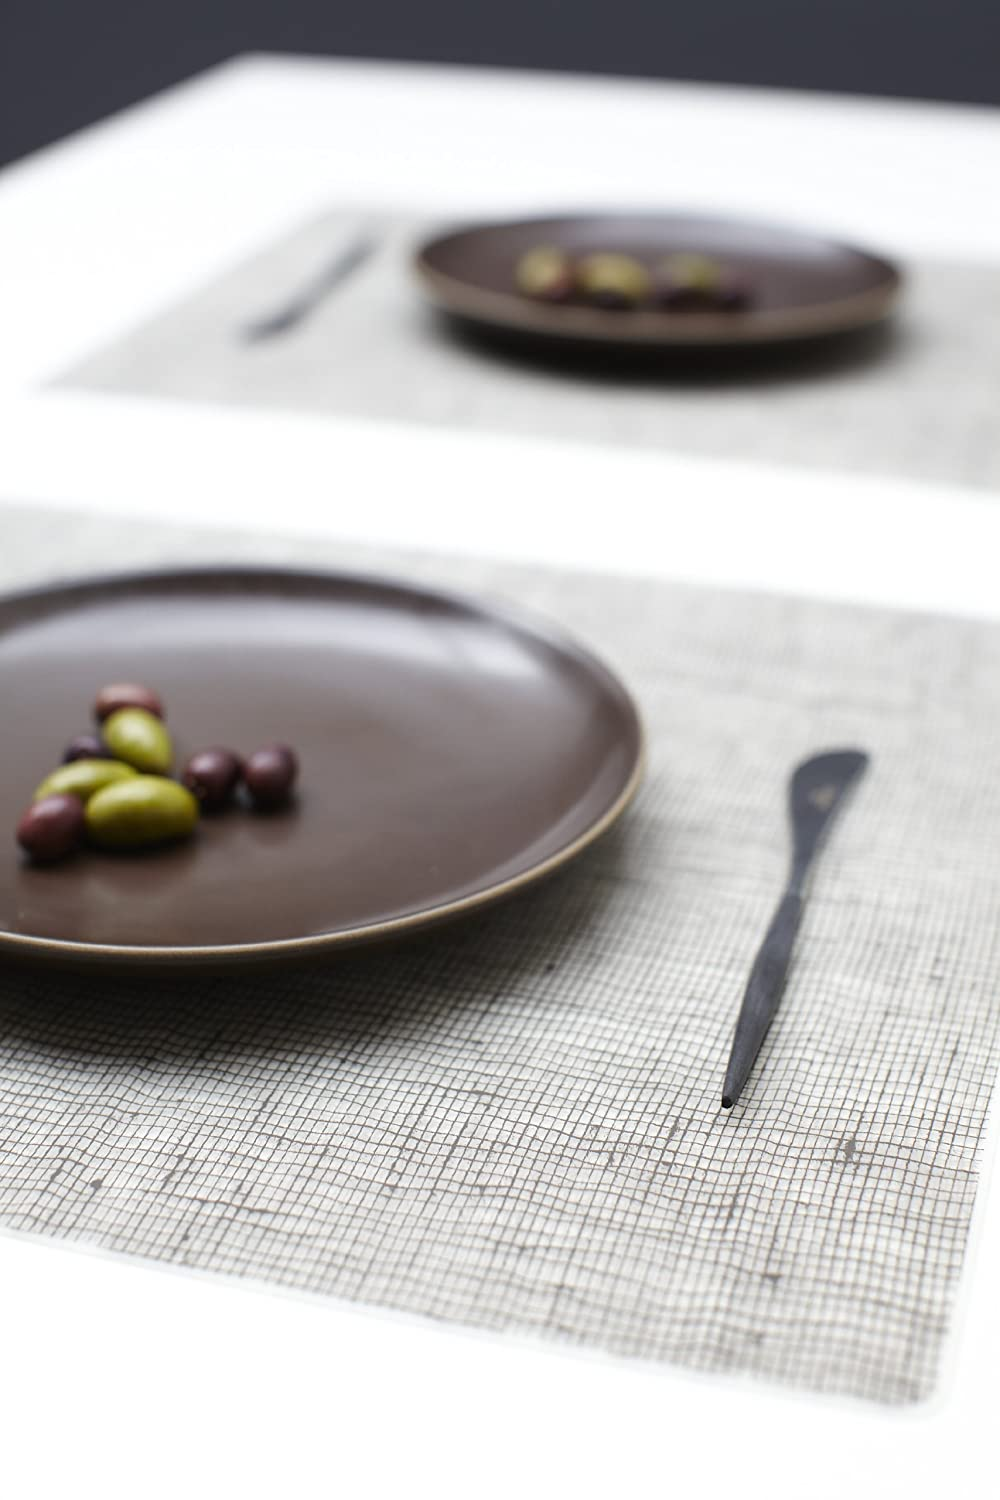 moderntwist silicone placemat linen chocolate  new free  - the moderntwist silicone placemat is intended to enhance the beauty of thedining table while providing subtle visual interest that doesn't interferewith